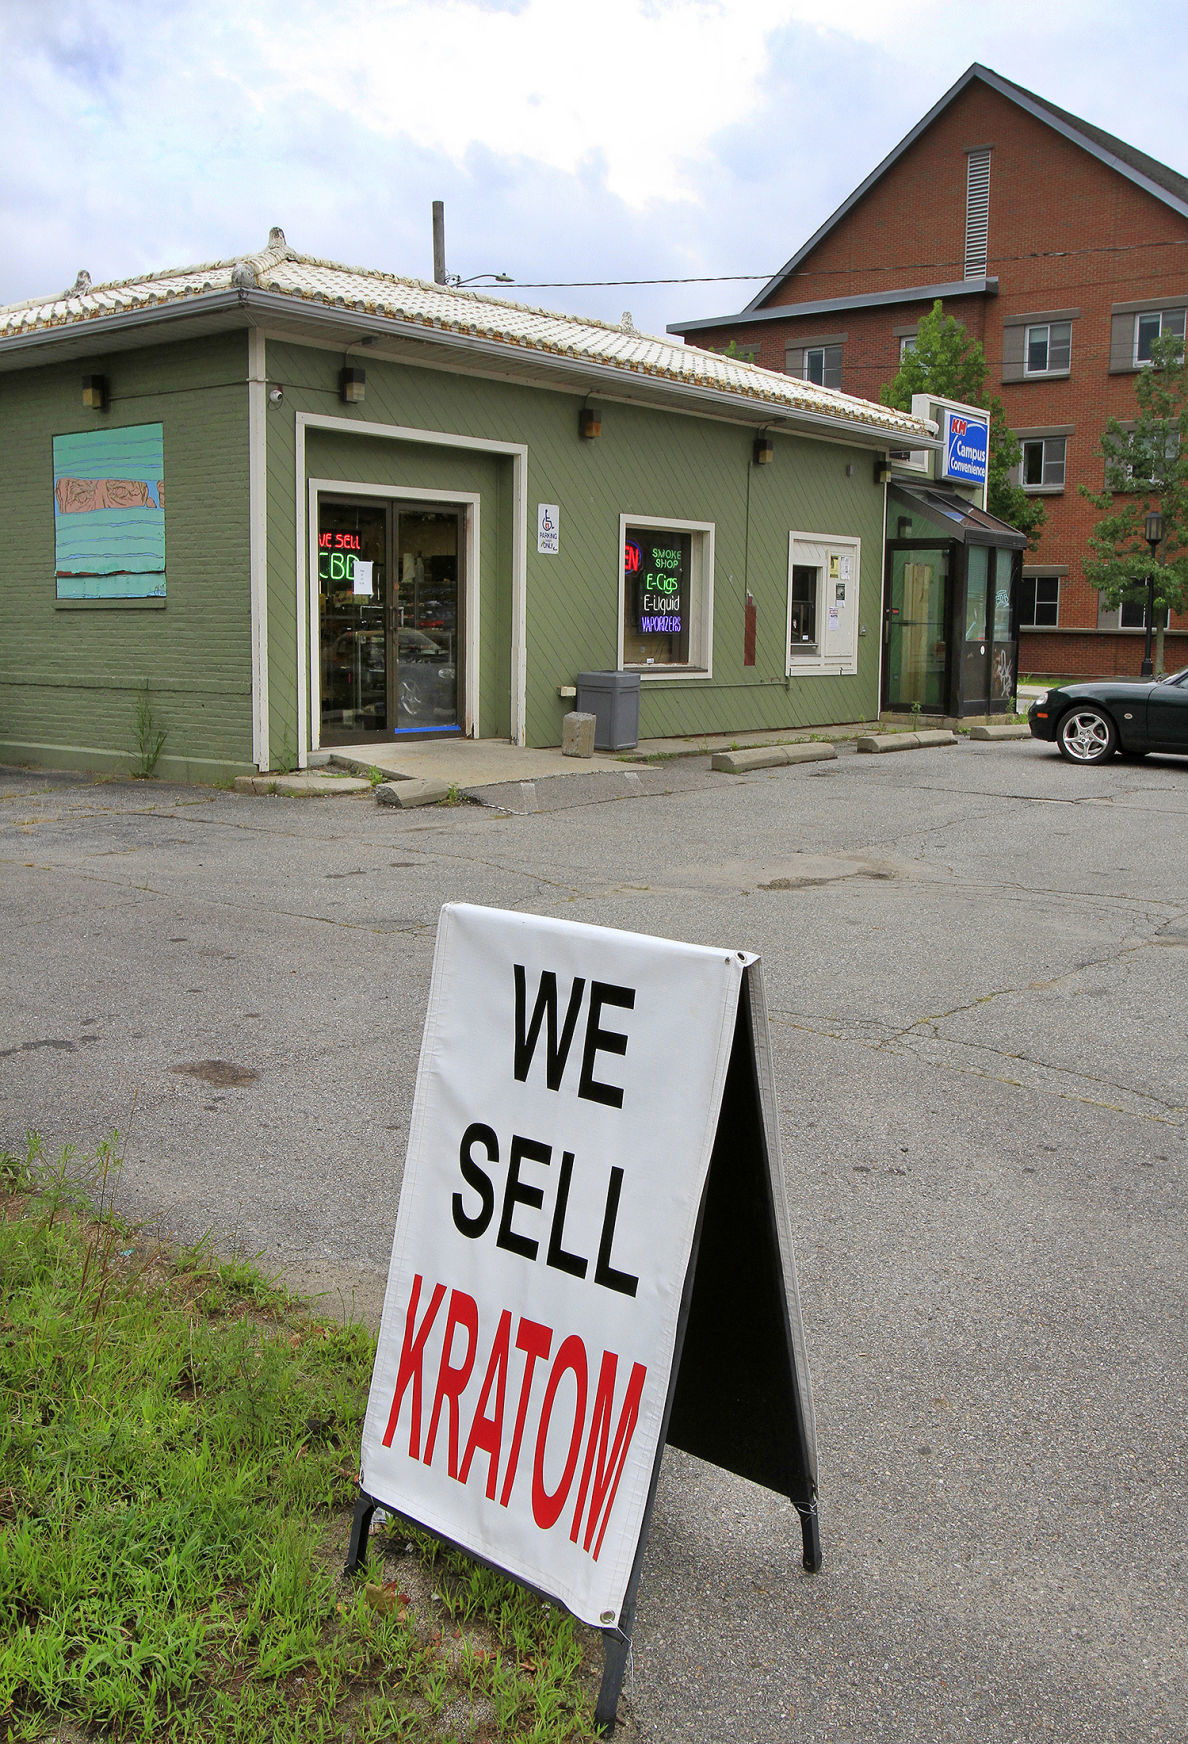 'We sell kratom'